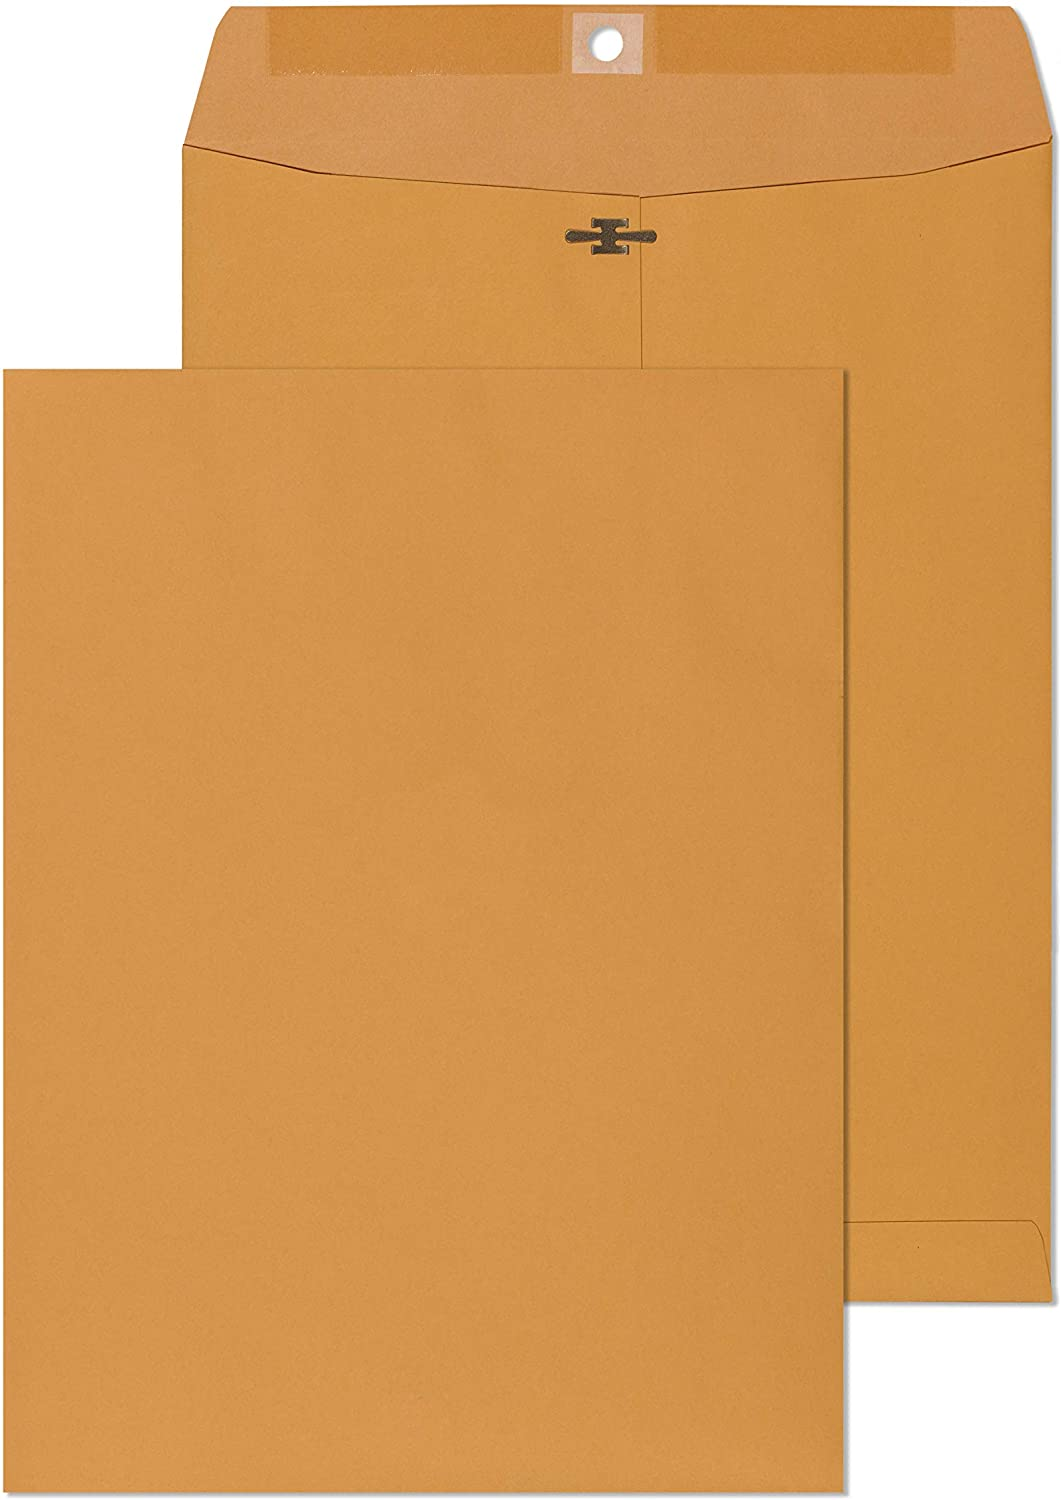 9 x 12 Clasp Envelopes Pack of 50000